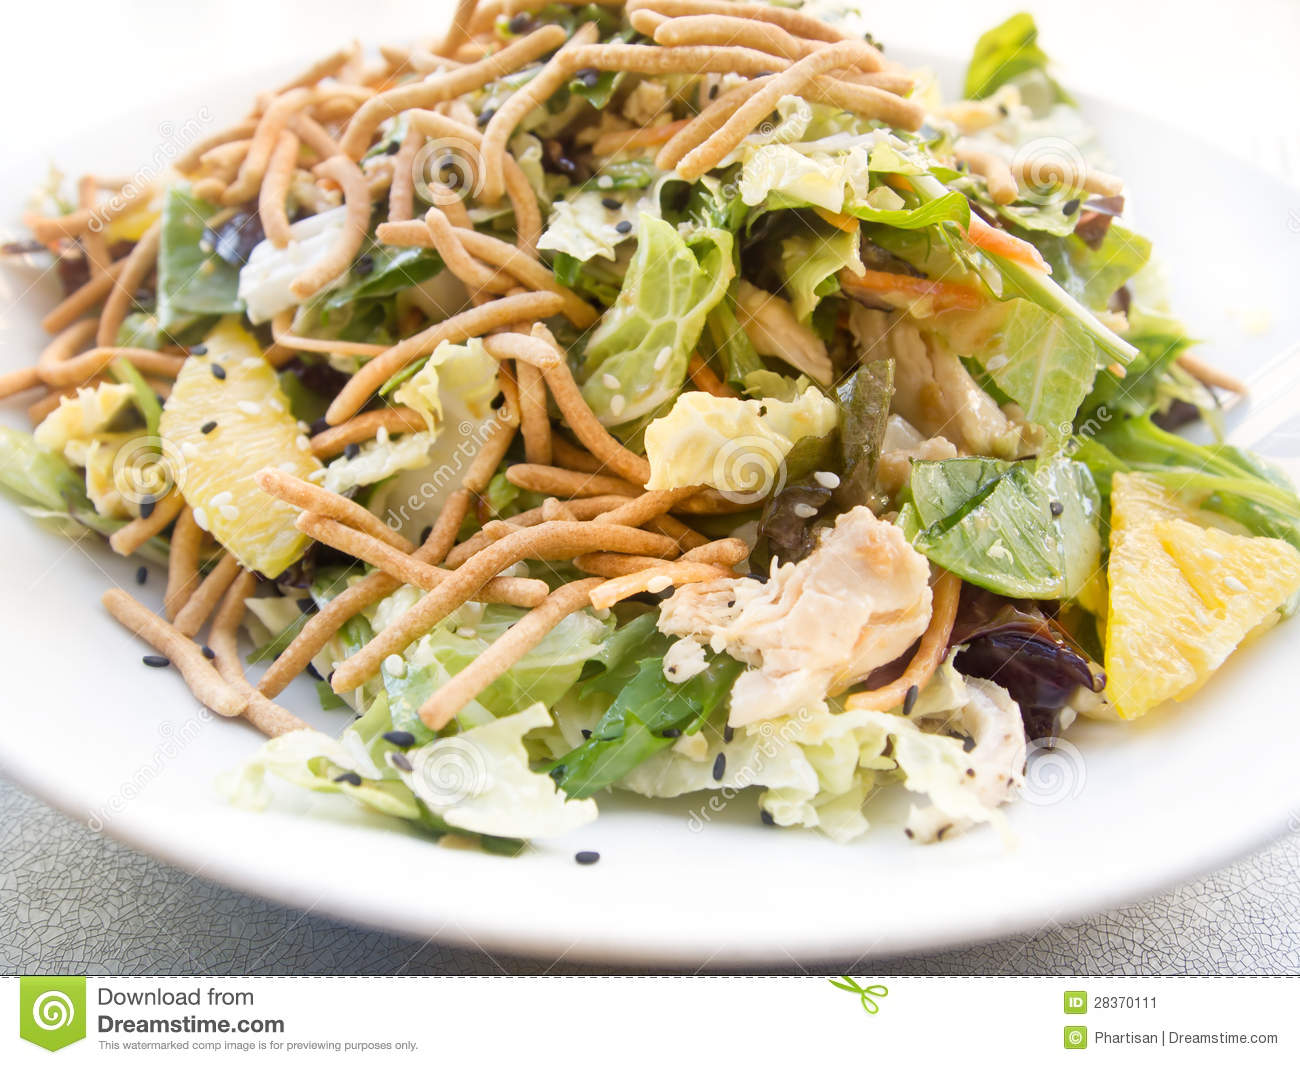 Delicious plate of Asian style healthy chicken salad.